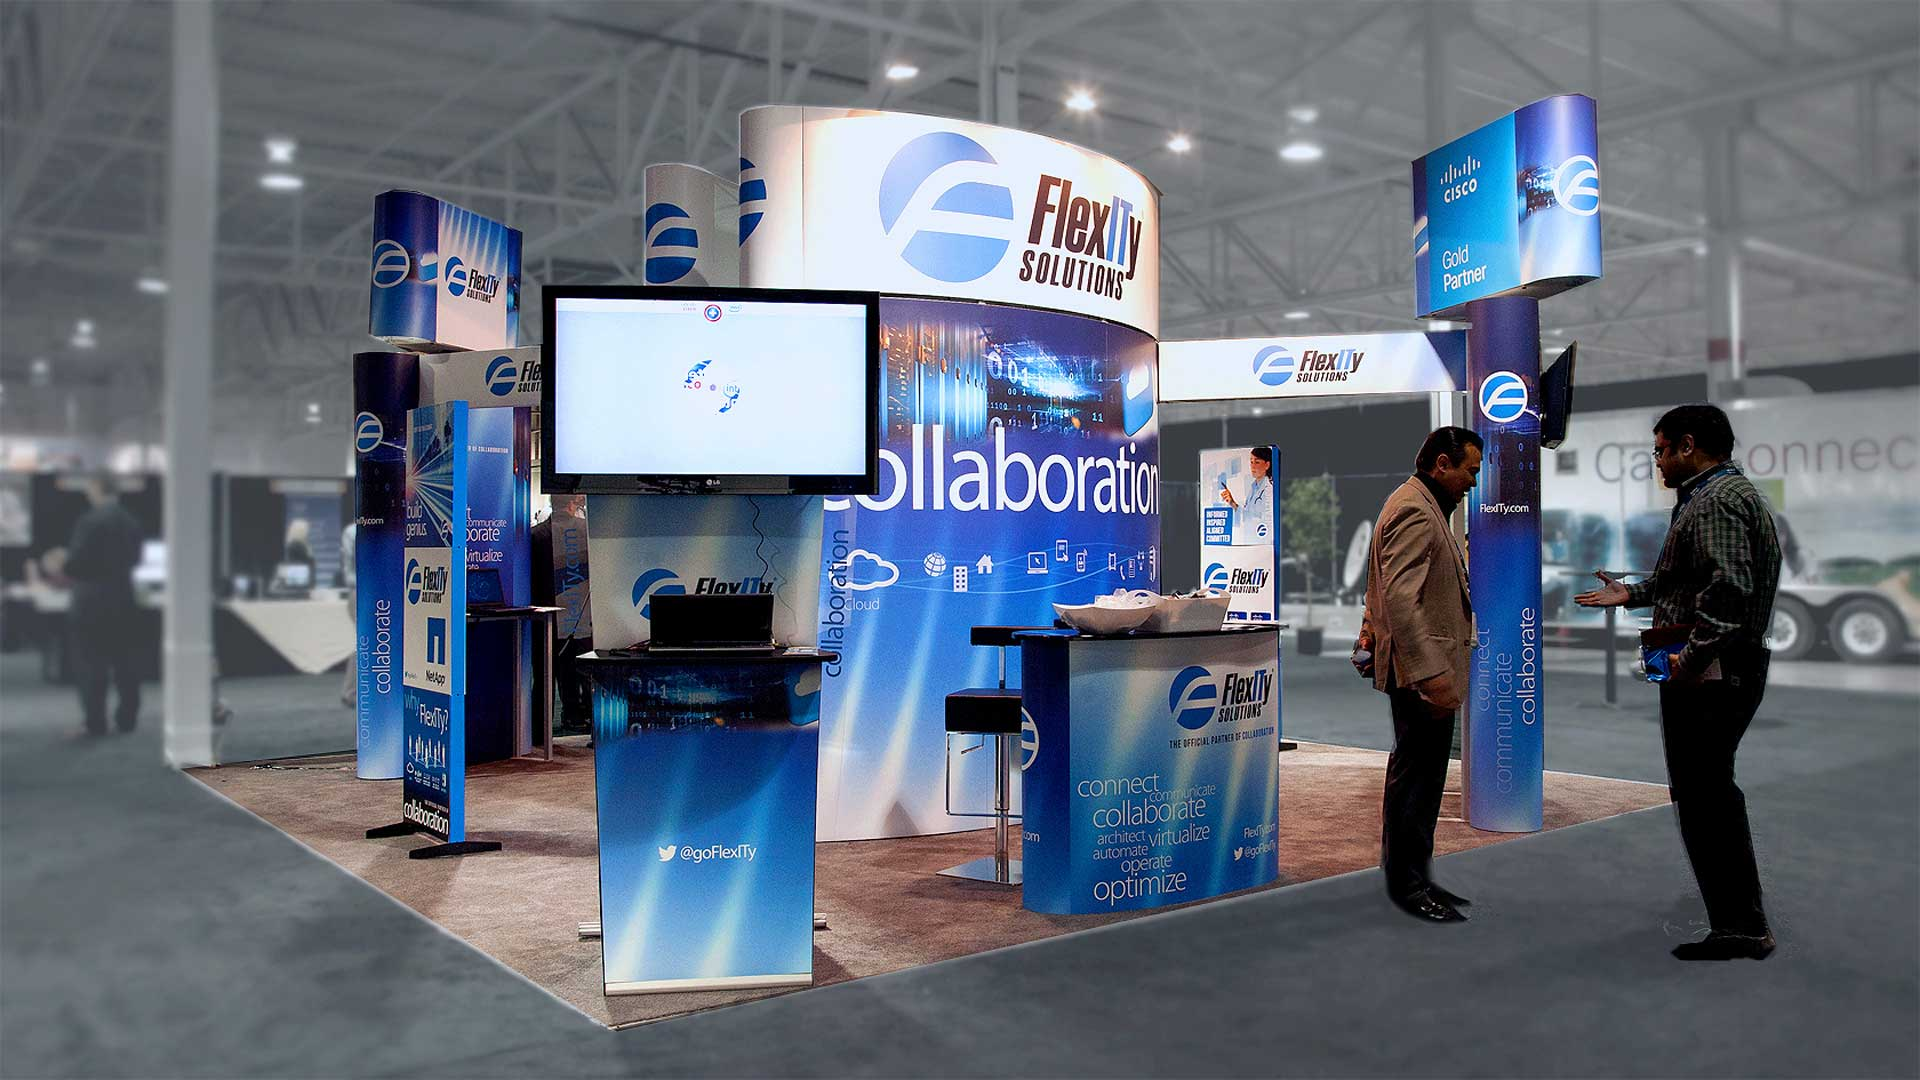 All of our display solutions are designed to make your brand and products stand out!